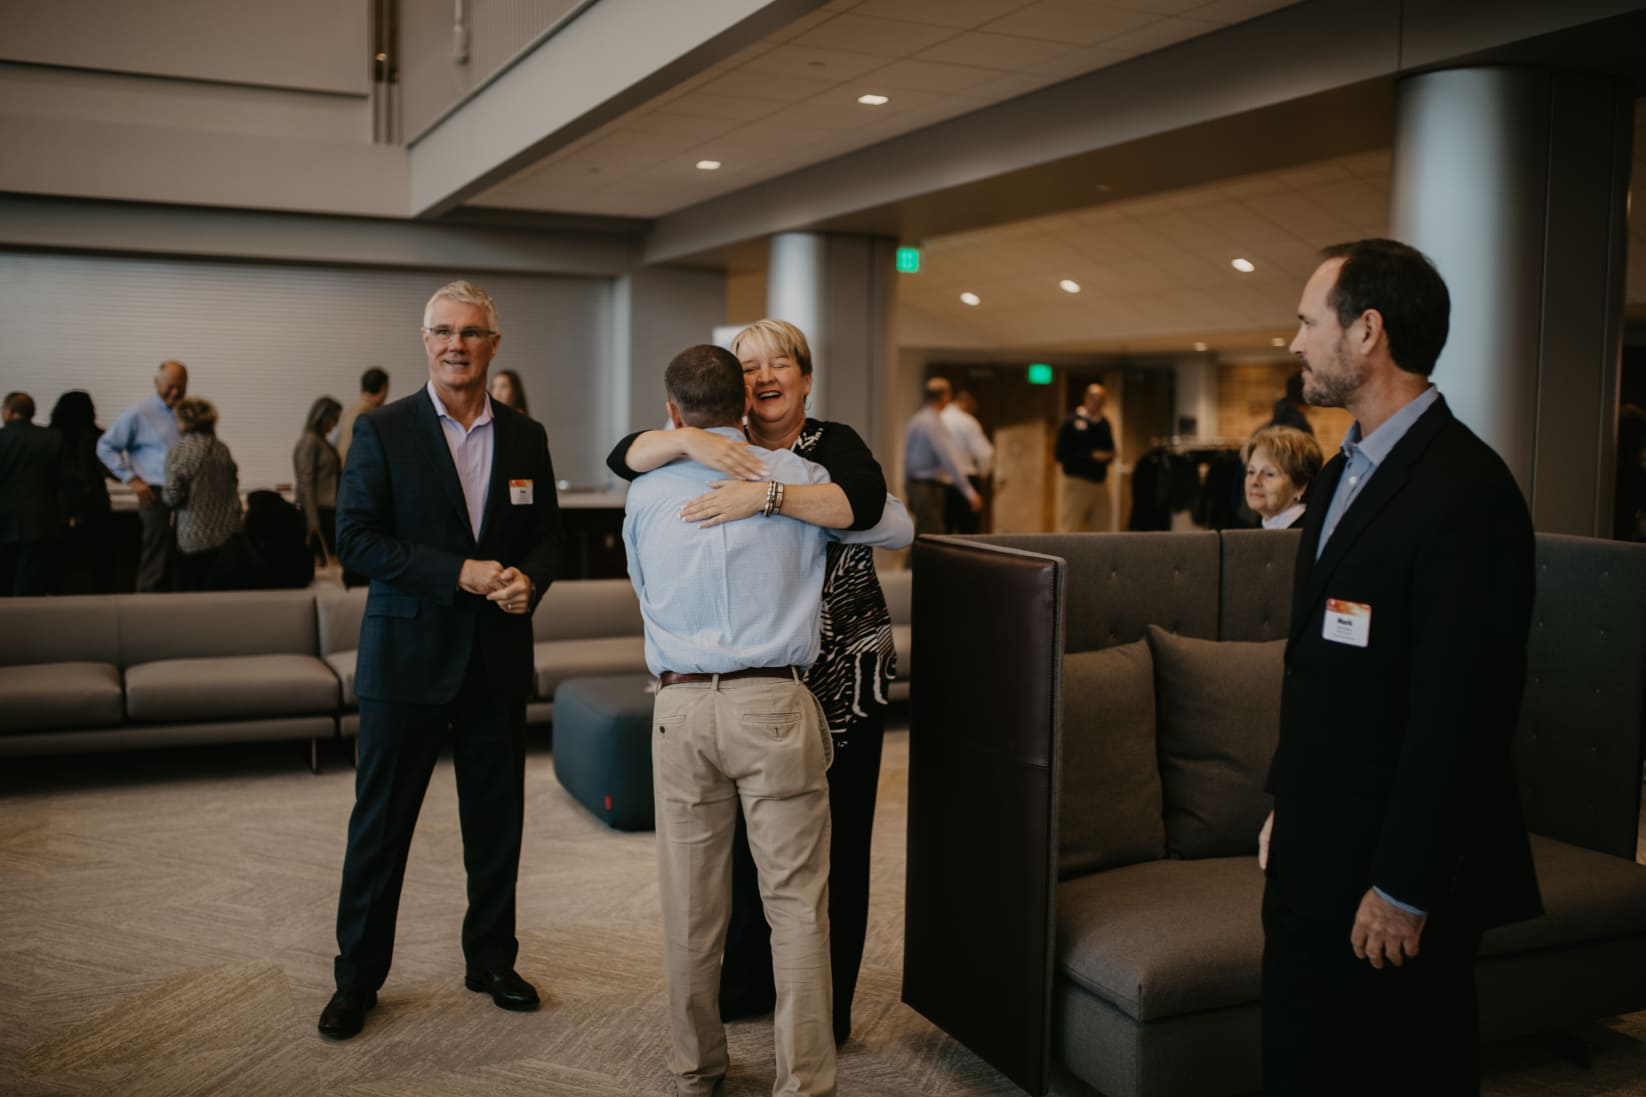 Annual-Meeting--Sept-2018-from-Symposia-Labs23-w1646.jpg